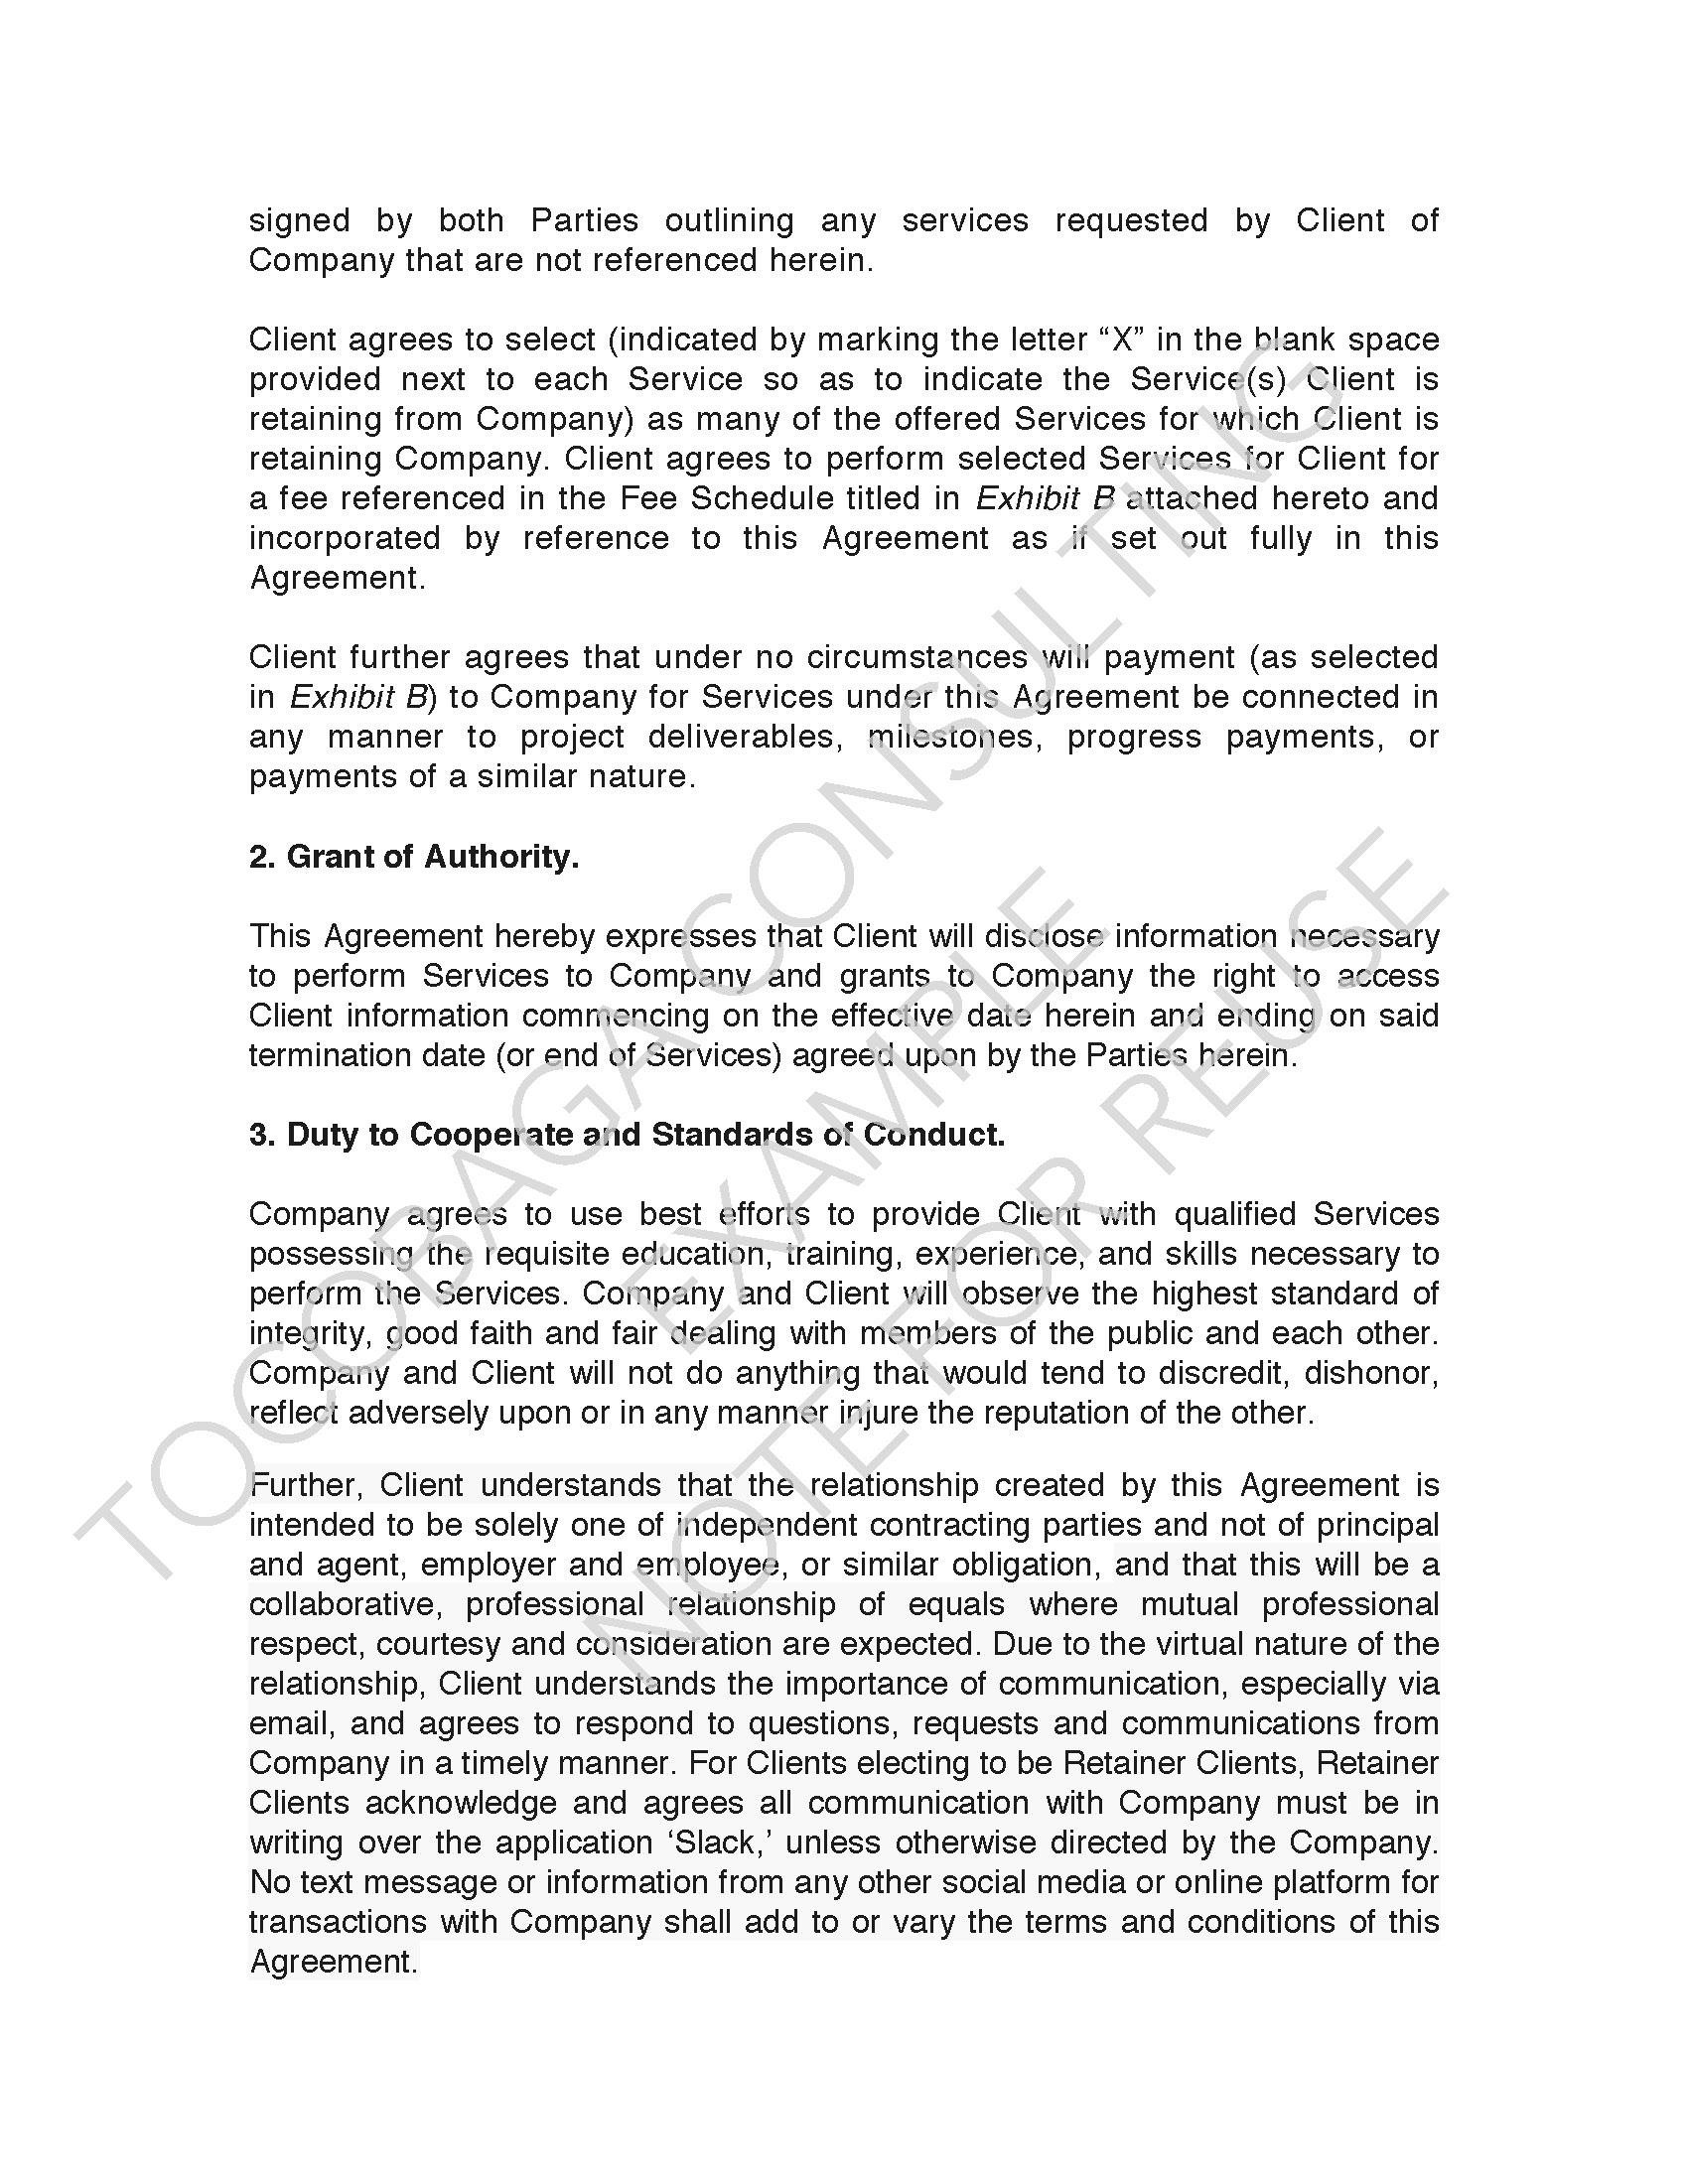 Company Services Agreement EXAMPLE_Page_02.jpg